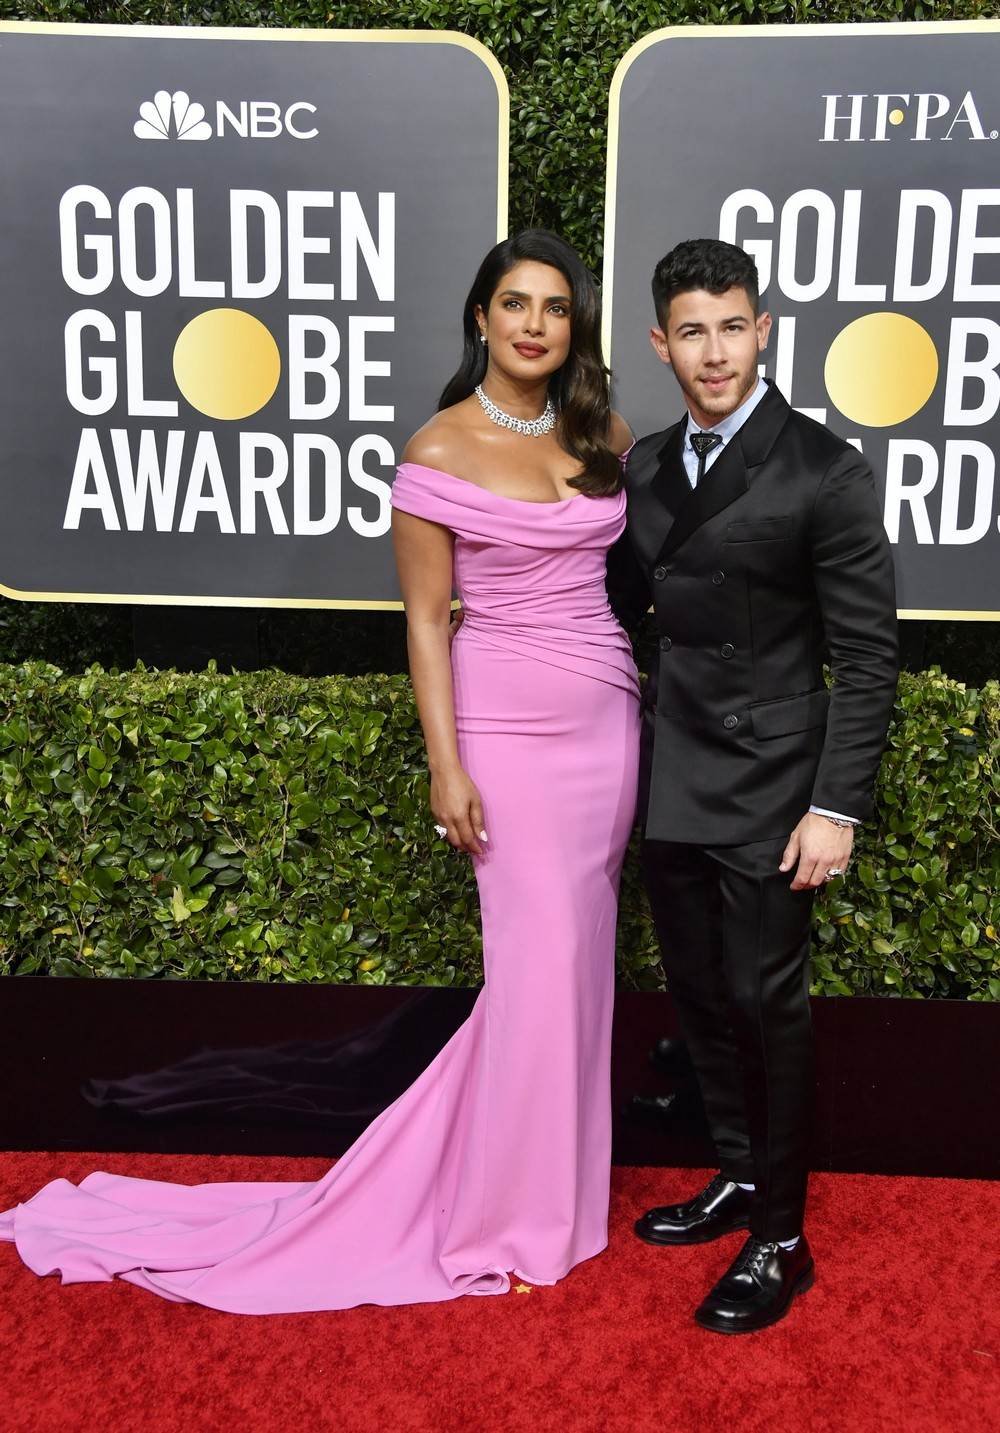 Golden Globes 2020 The Most Exciting Looks Seen on the Red Carpet 6 golden globes 2020 Golden Globes 2020: The Most Exciting Looks Seen on the Red Carpet Golden Globes 2020 The Most Exciting Looks Seen on the Red Carpet 6